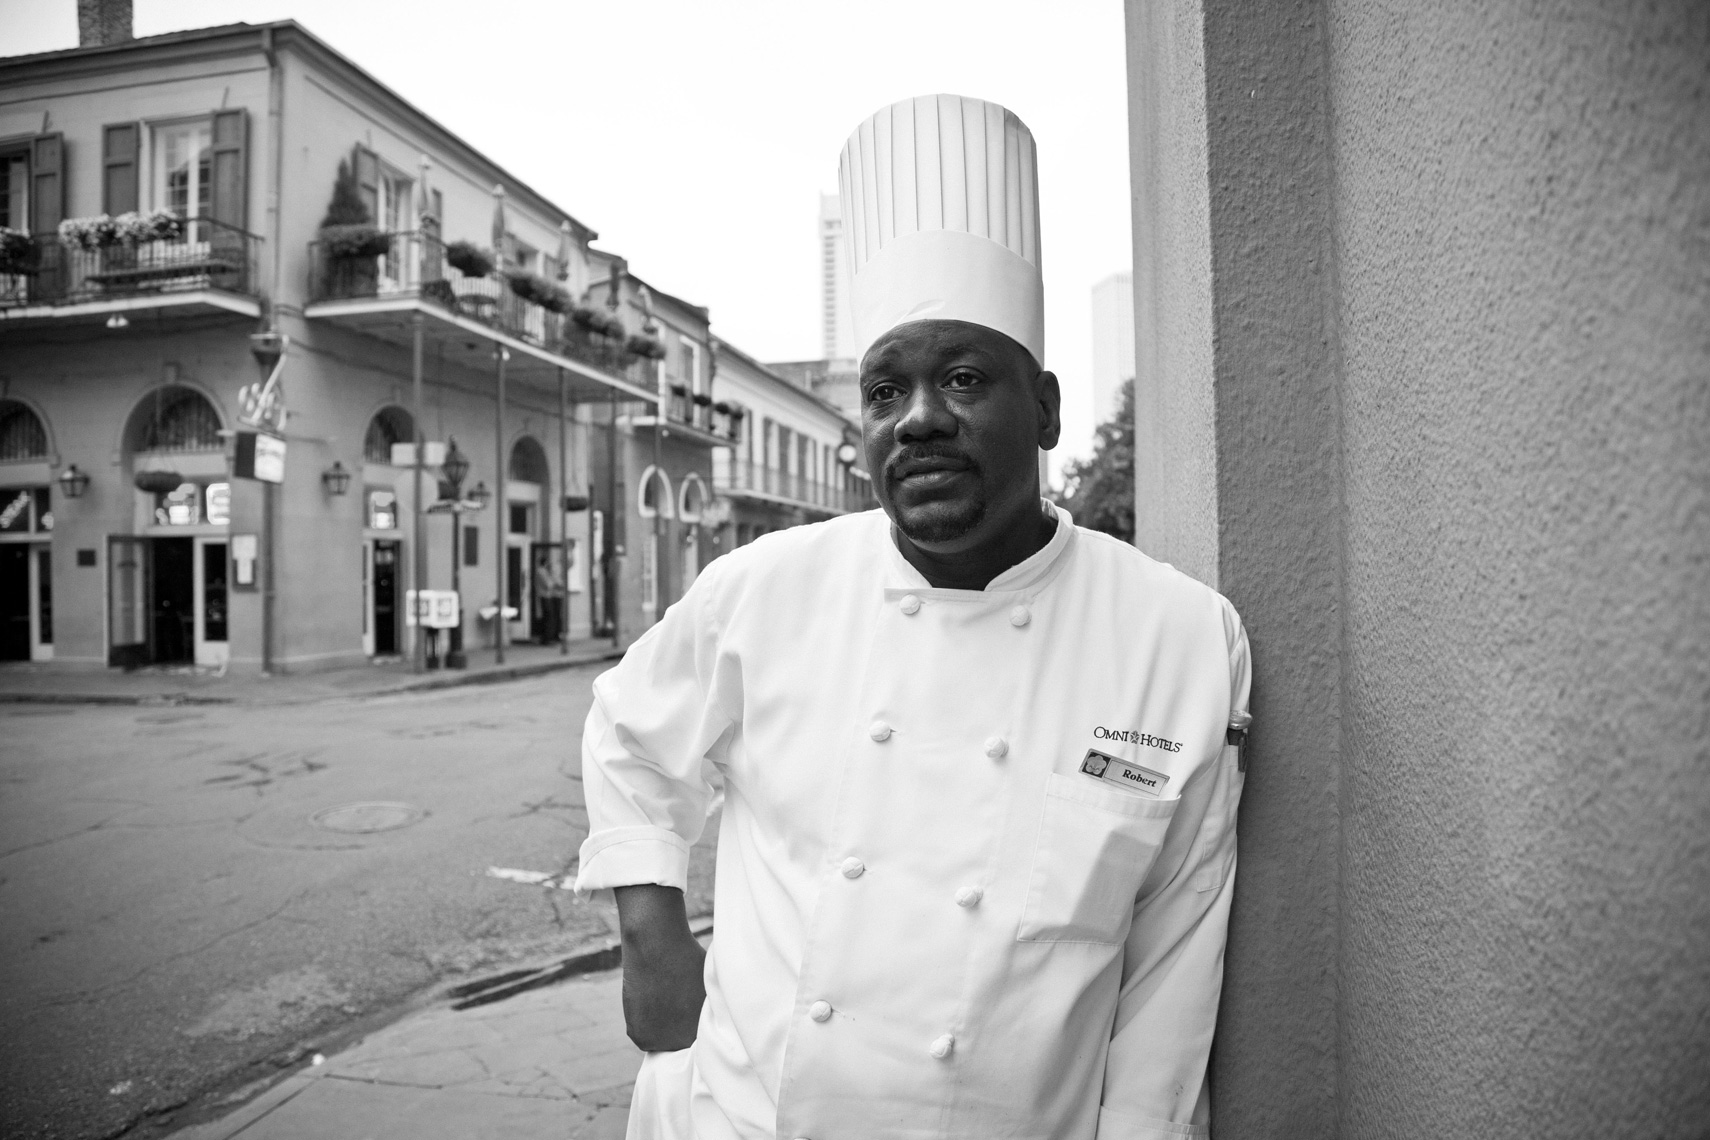 Chef Robert, New Orleans